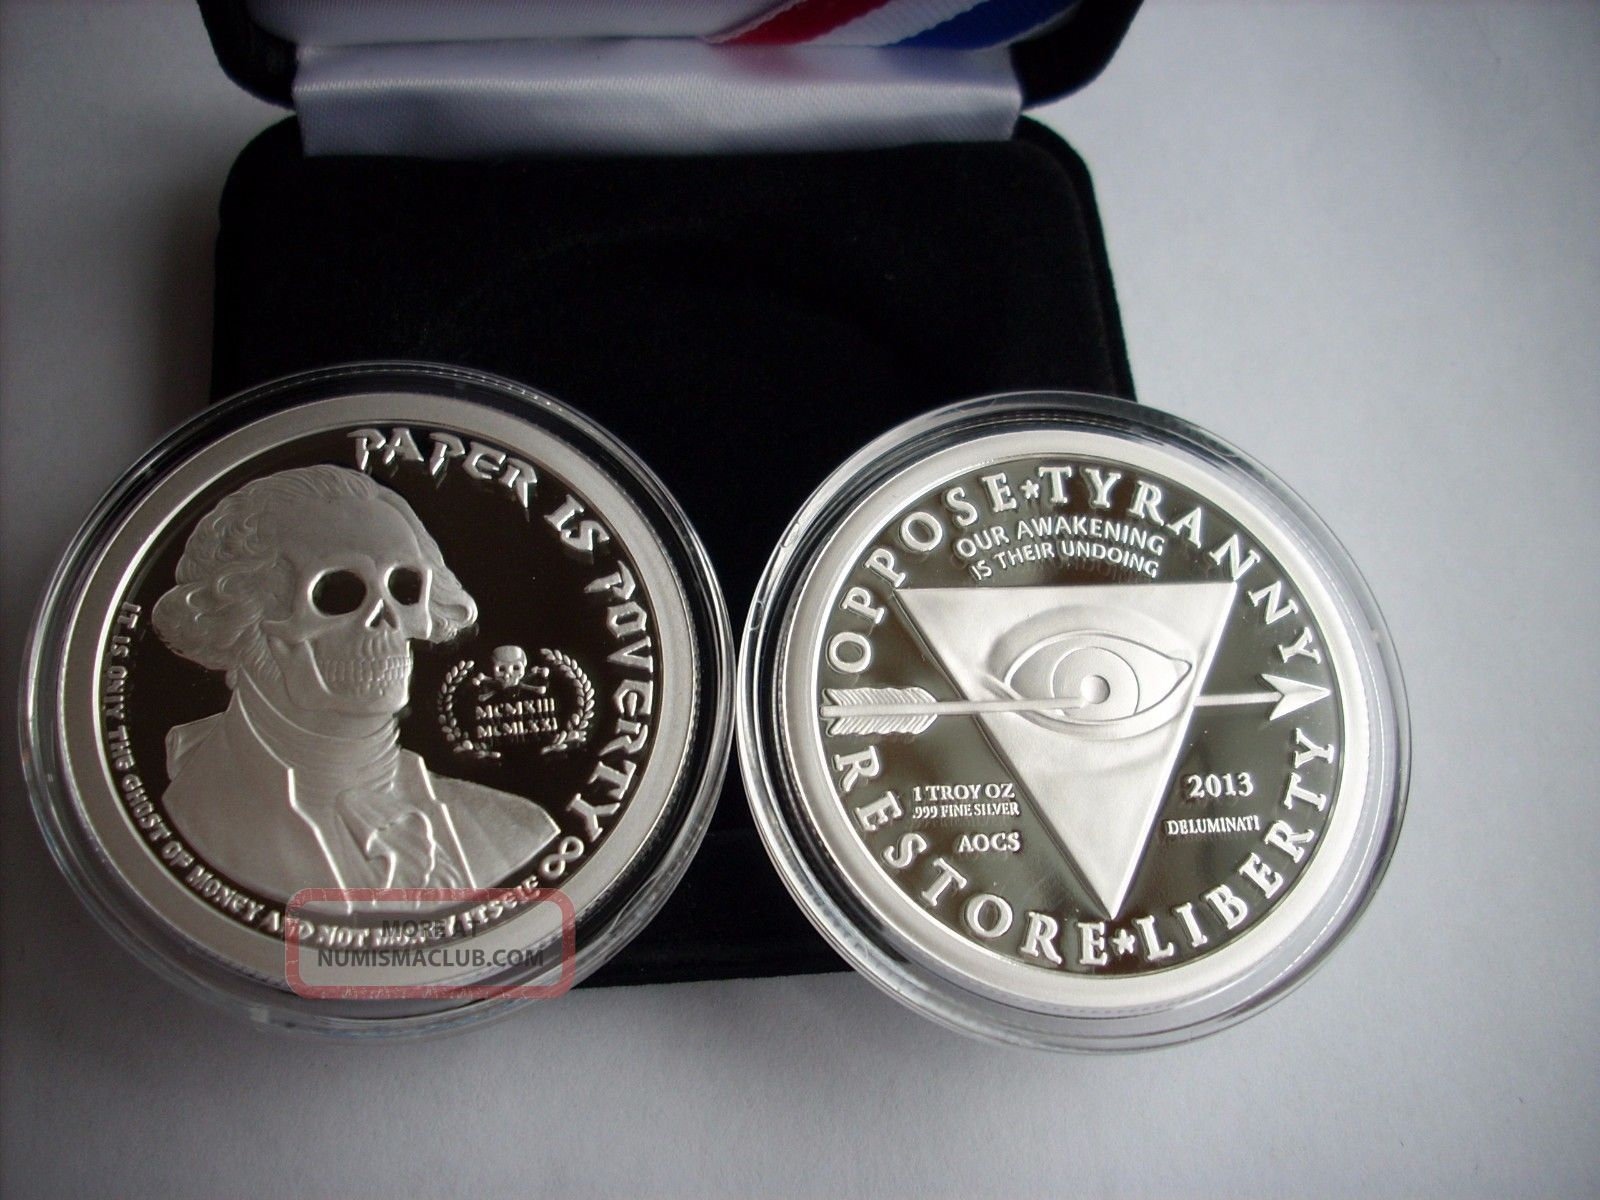 1 Oz Silver Coin Proof Ghost Money Deluminati Series